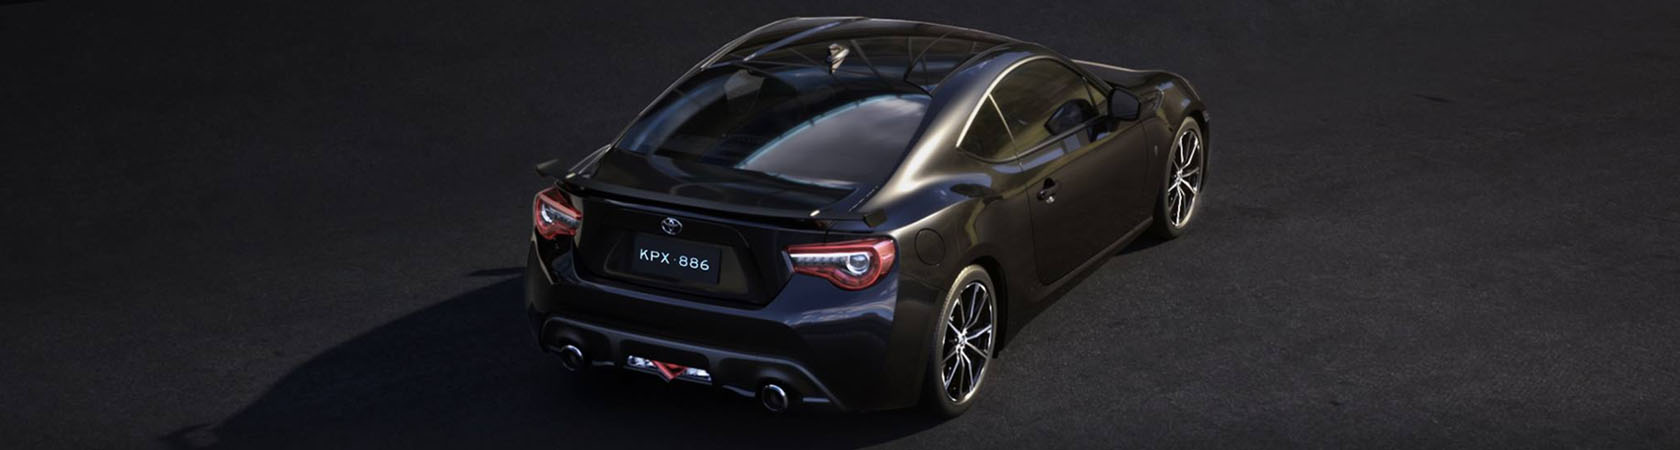 Sydney City Toyota 86